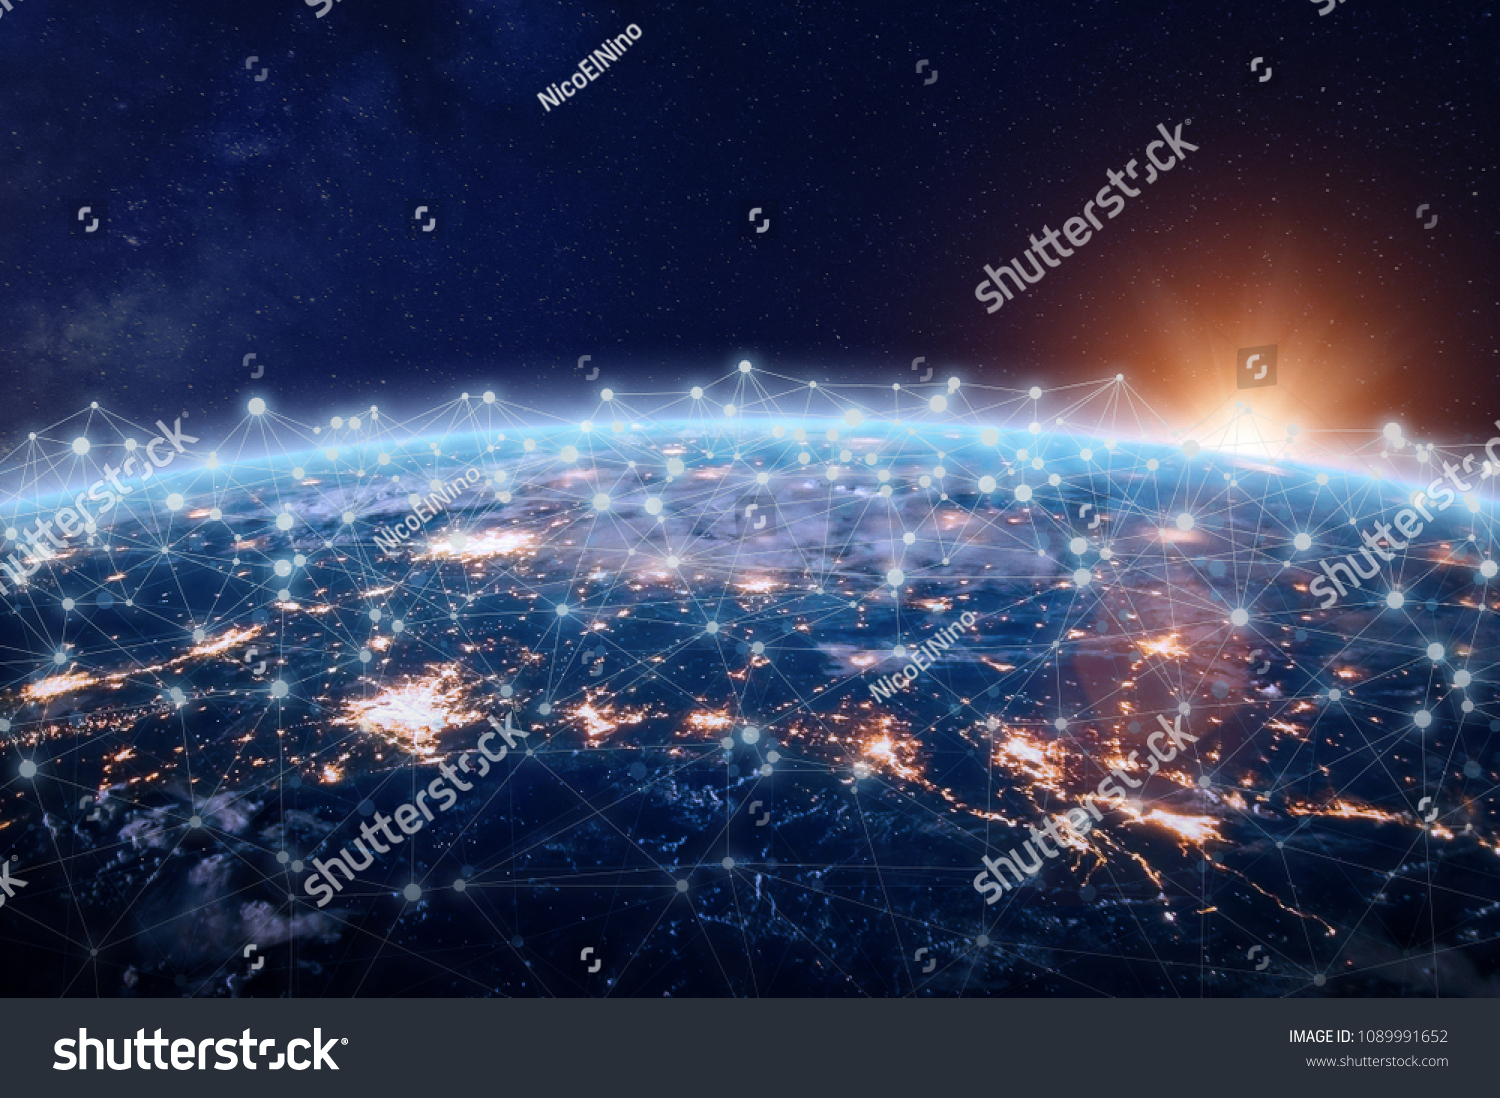 Global world telecommunication network connected around planet Earth, concept about internet and worldwide communication technology for finance, blockchain cryptocurrency or IoT, image from NASA #1089991652